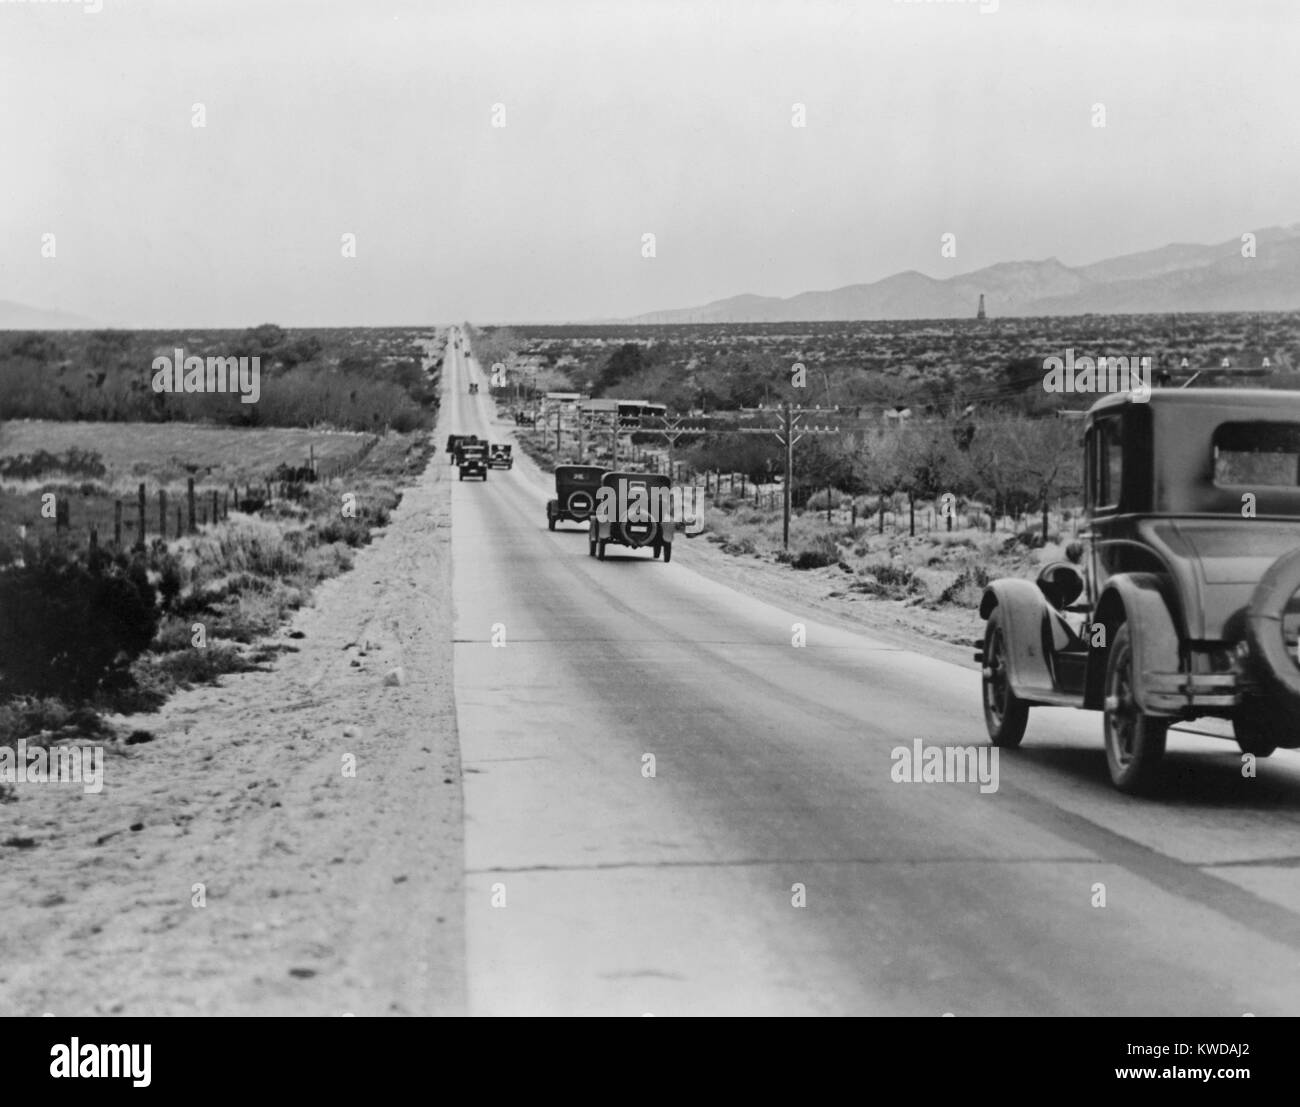 Highway leading towards Los Angeles across the Coachilla Desert, California, in the 1920s (BSLOC 2016 10 120) Stock Photo